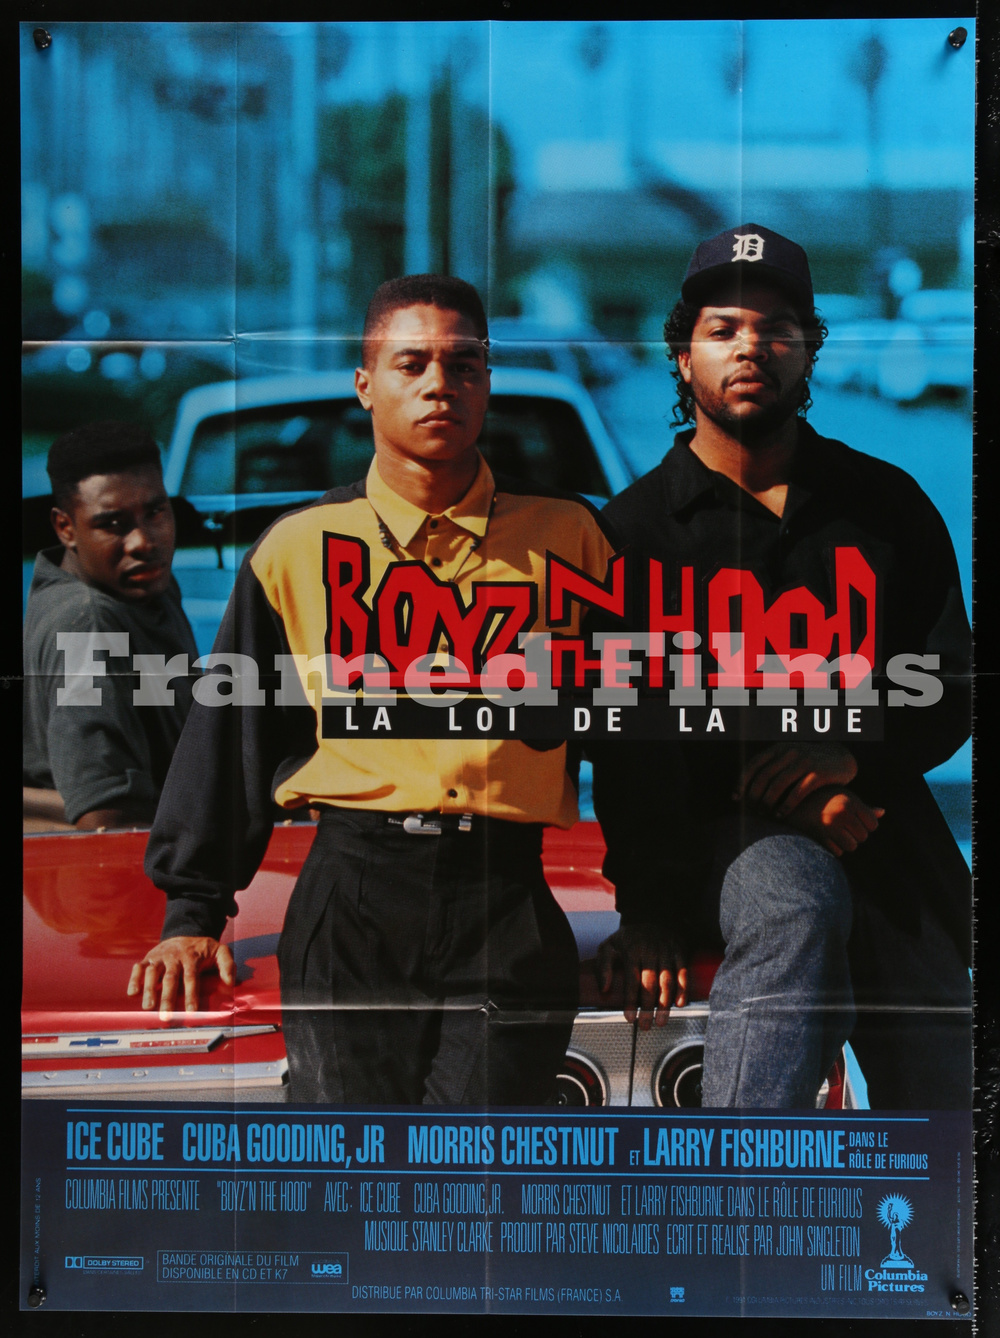 french_1p_boyz_n_the_hood_SD01025_C.jpg